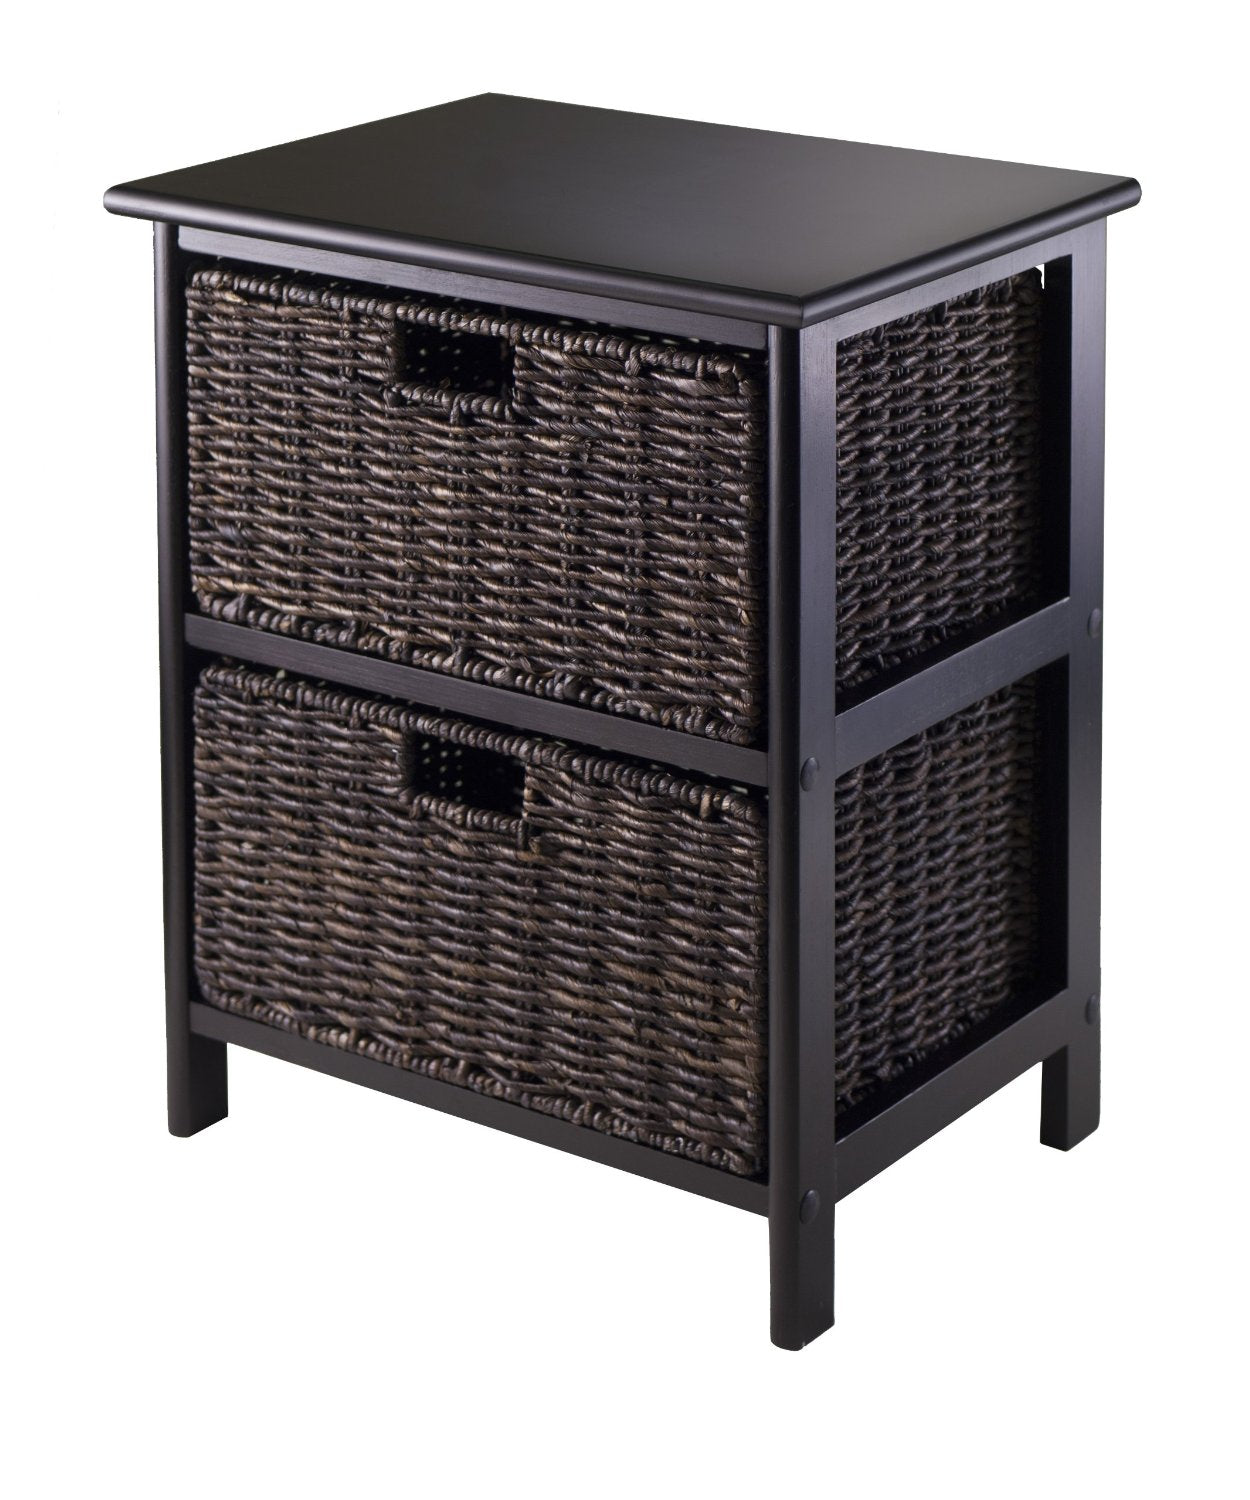 Omaha Storage Rack With Foldable Baskets, Black, 2 Baskets - Pot Racks Plus